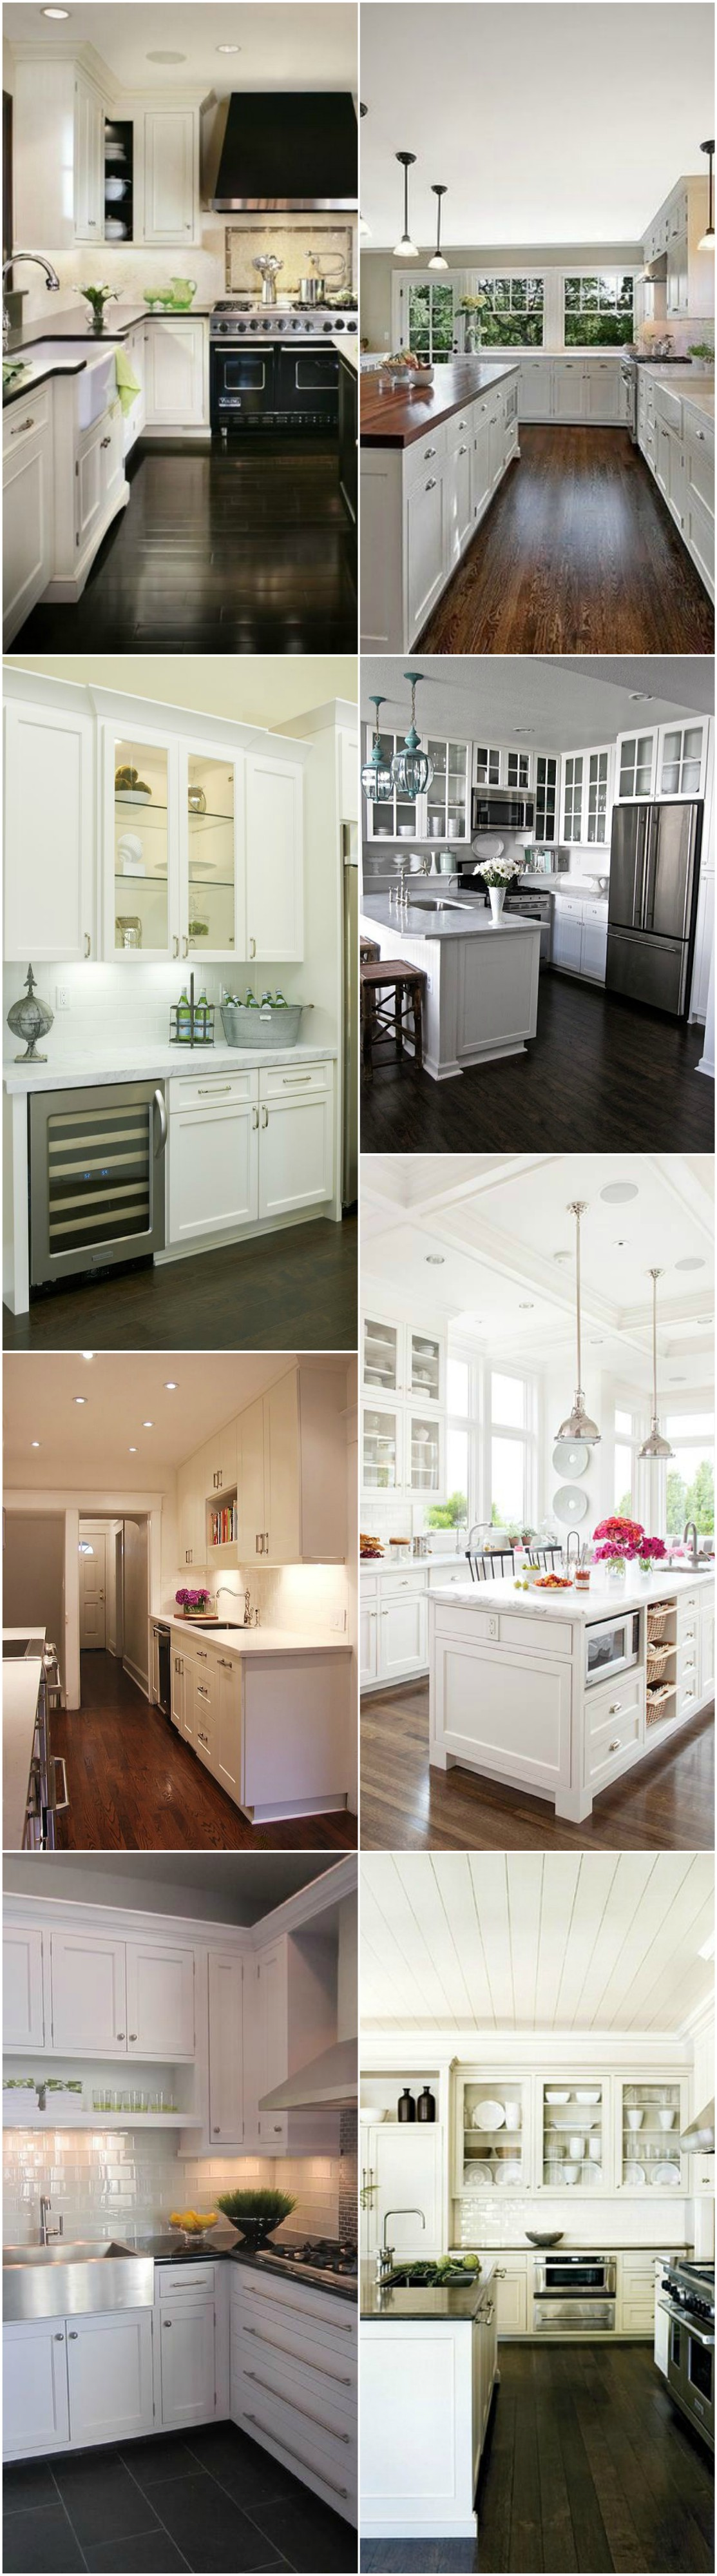 White kitchen with dark floors 2018